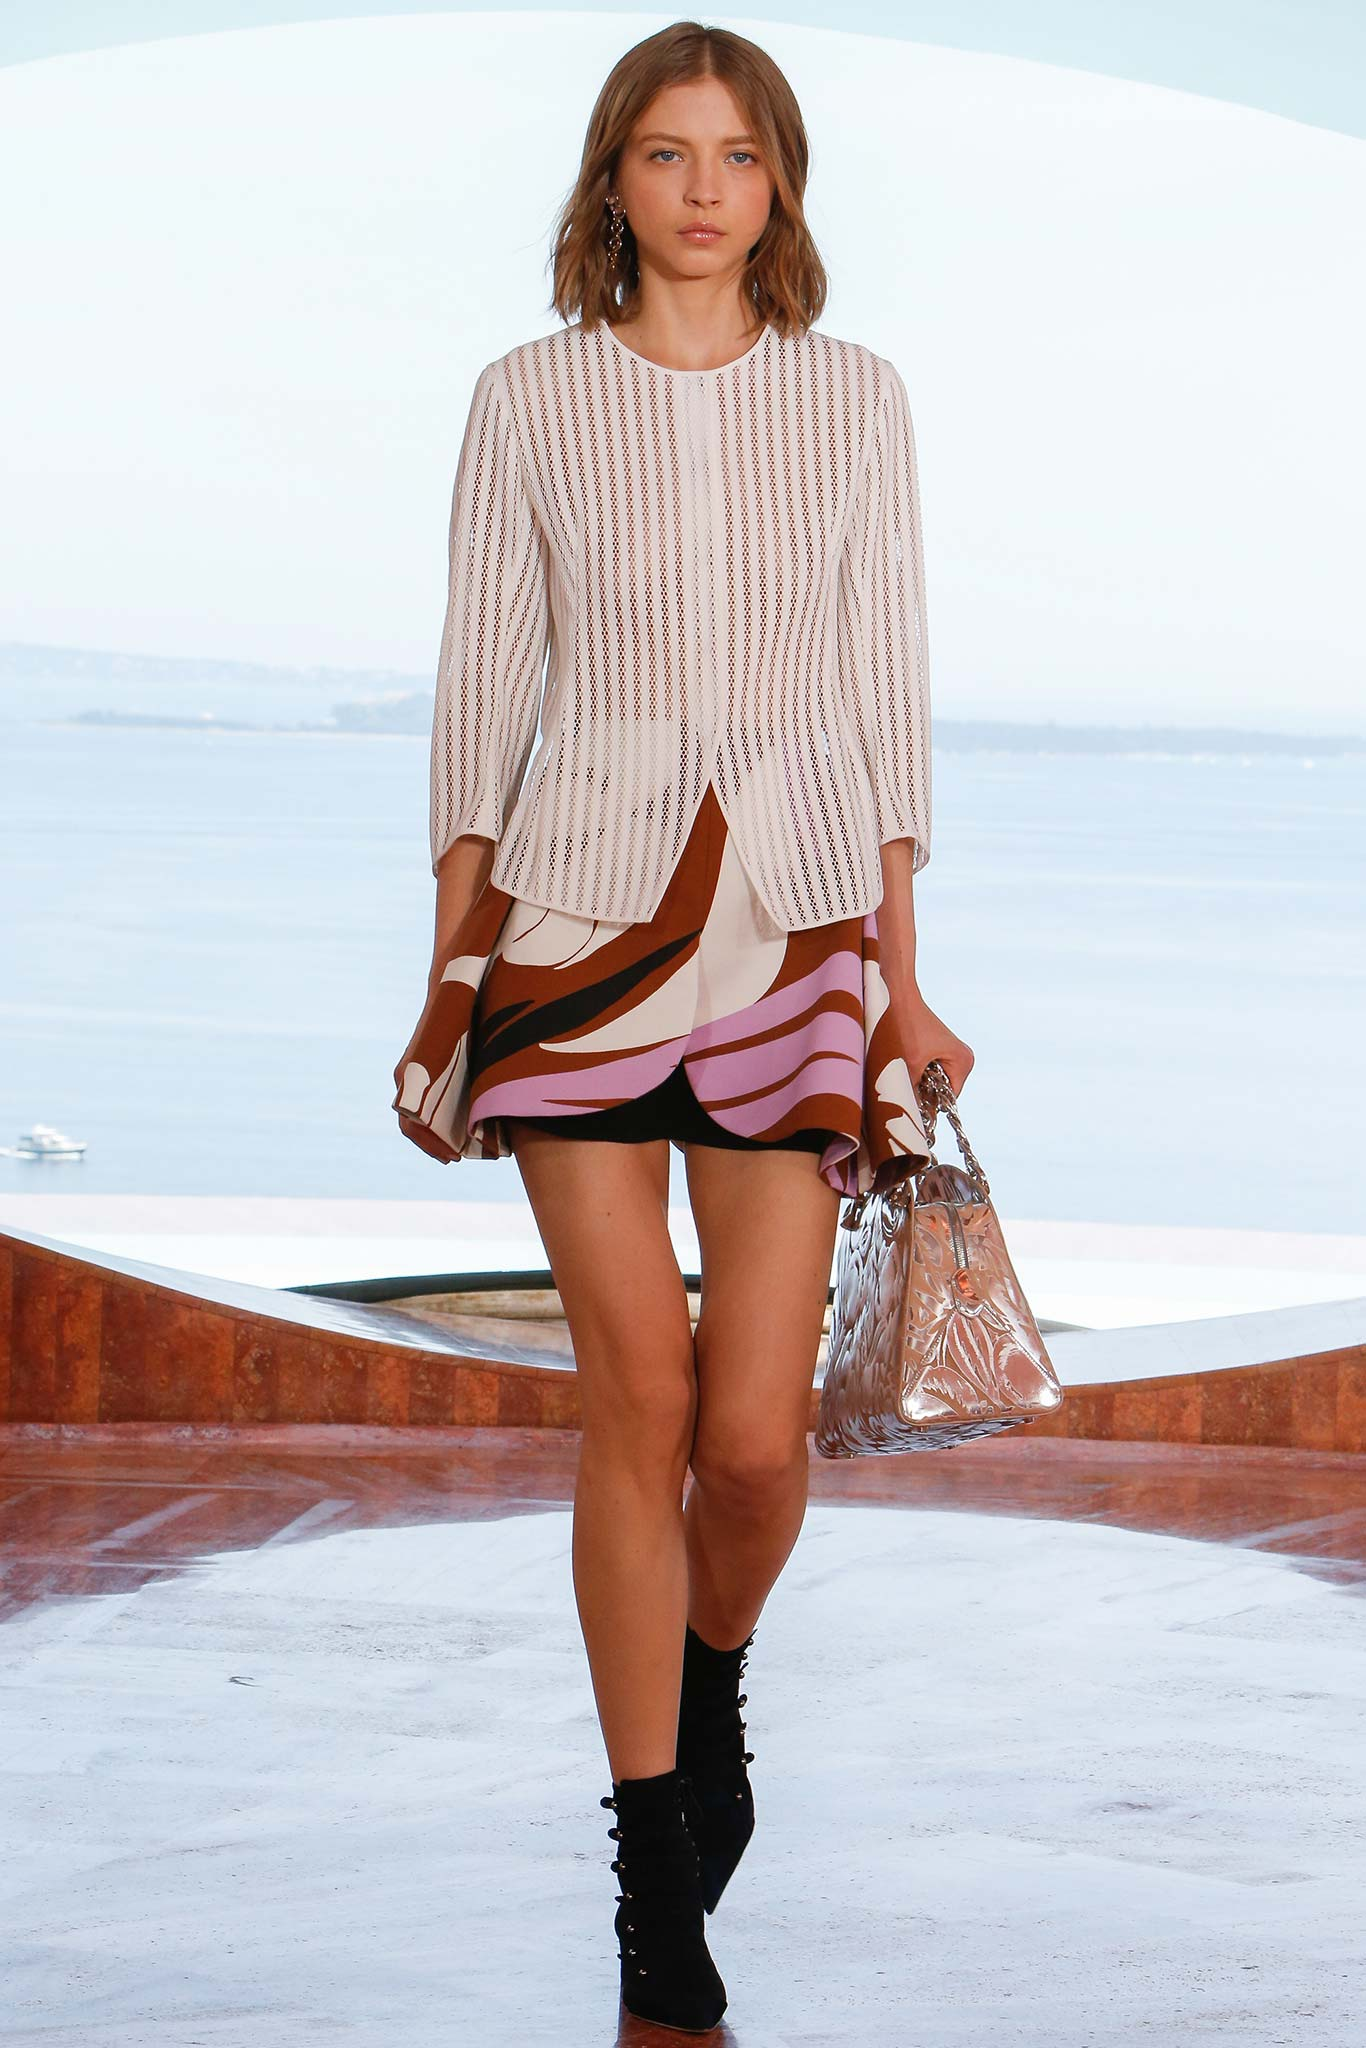 dior_cruise_2016_fashiondiaries_10